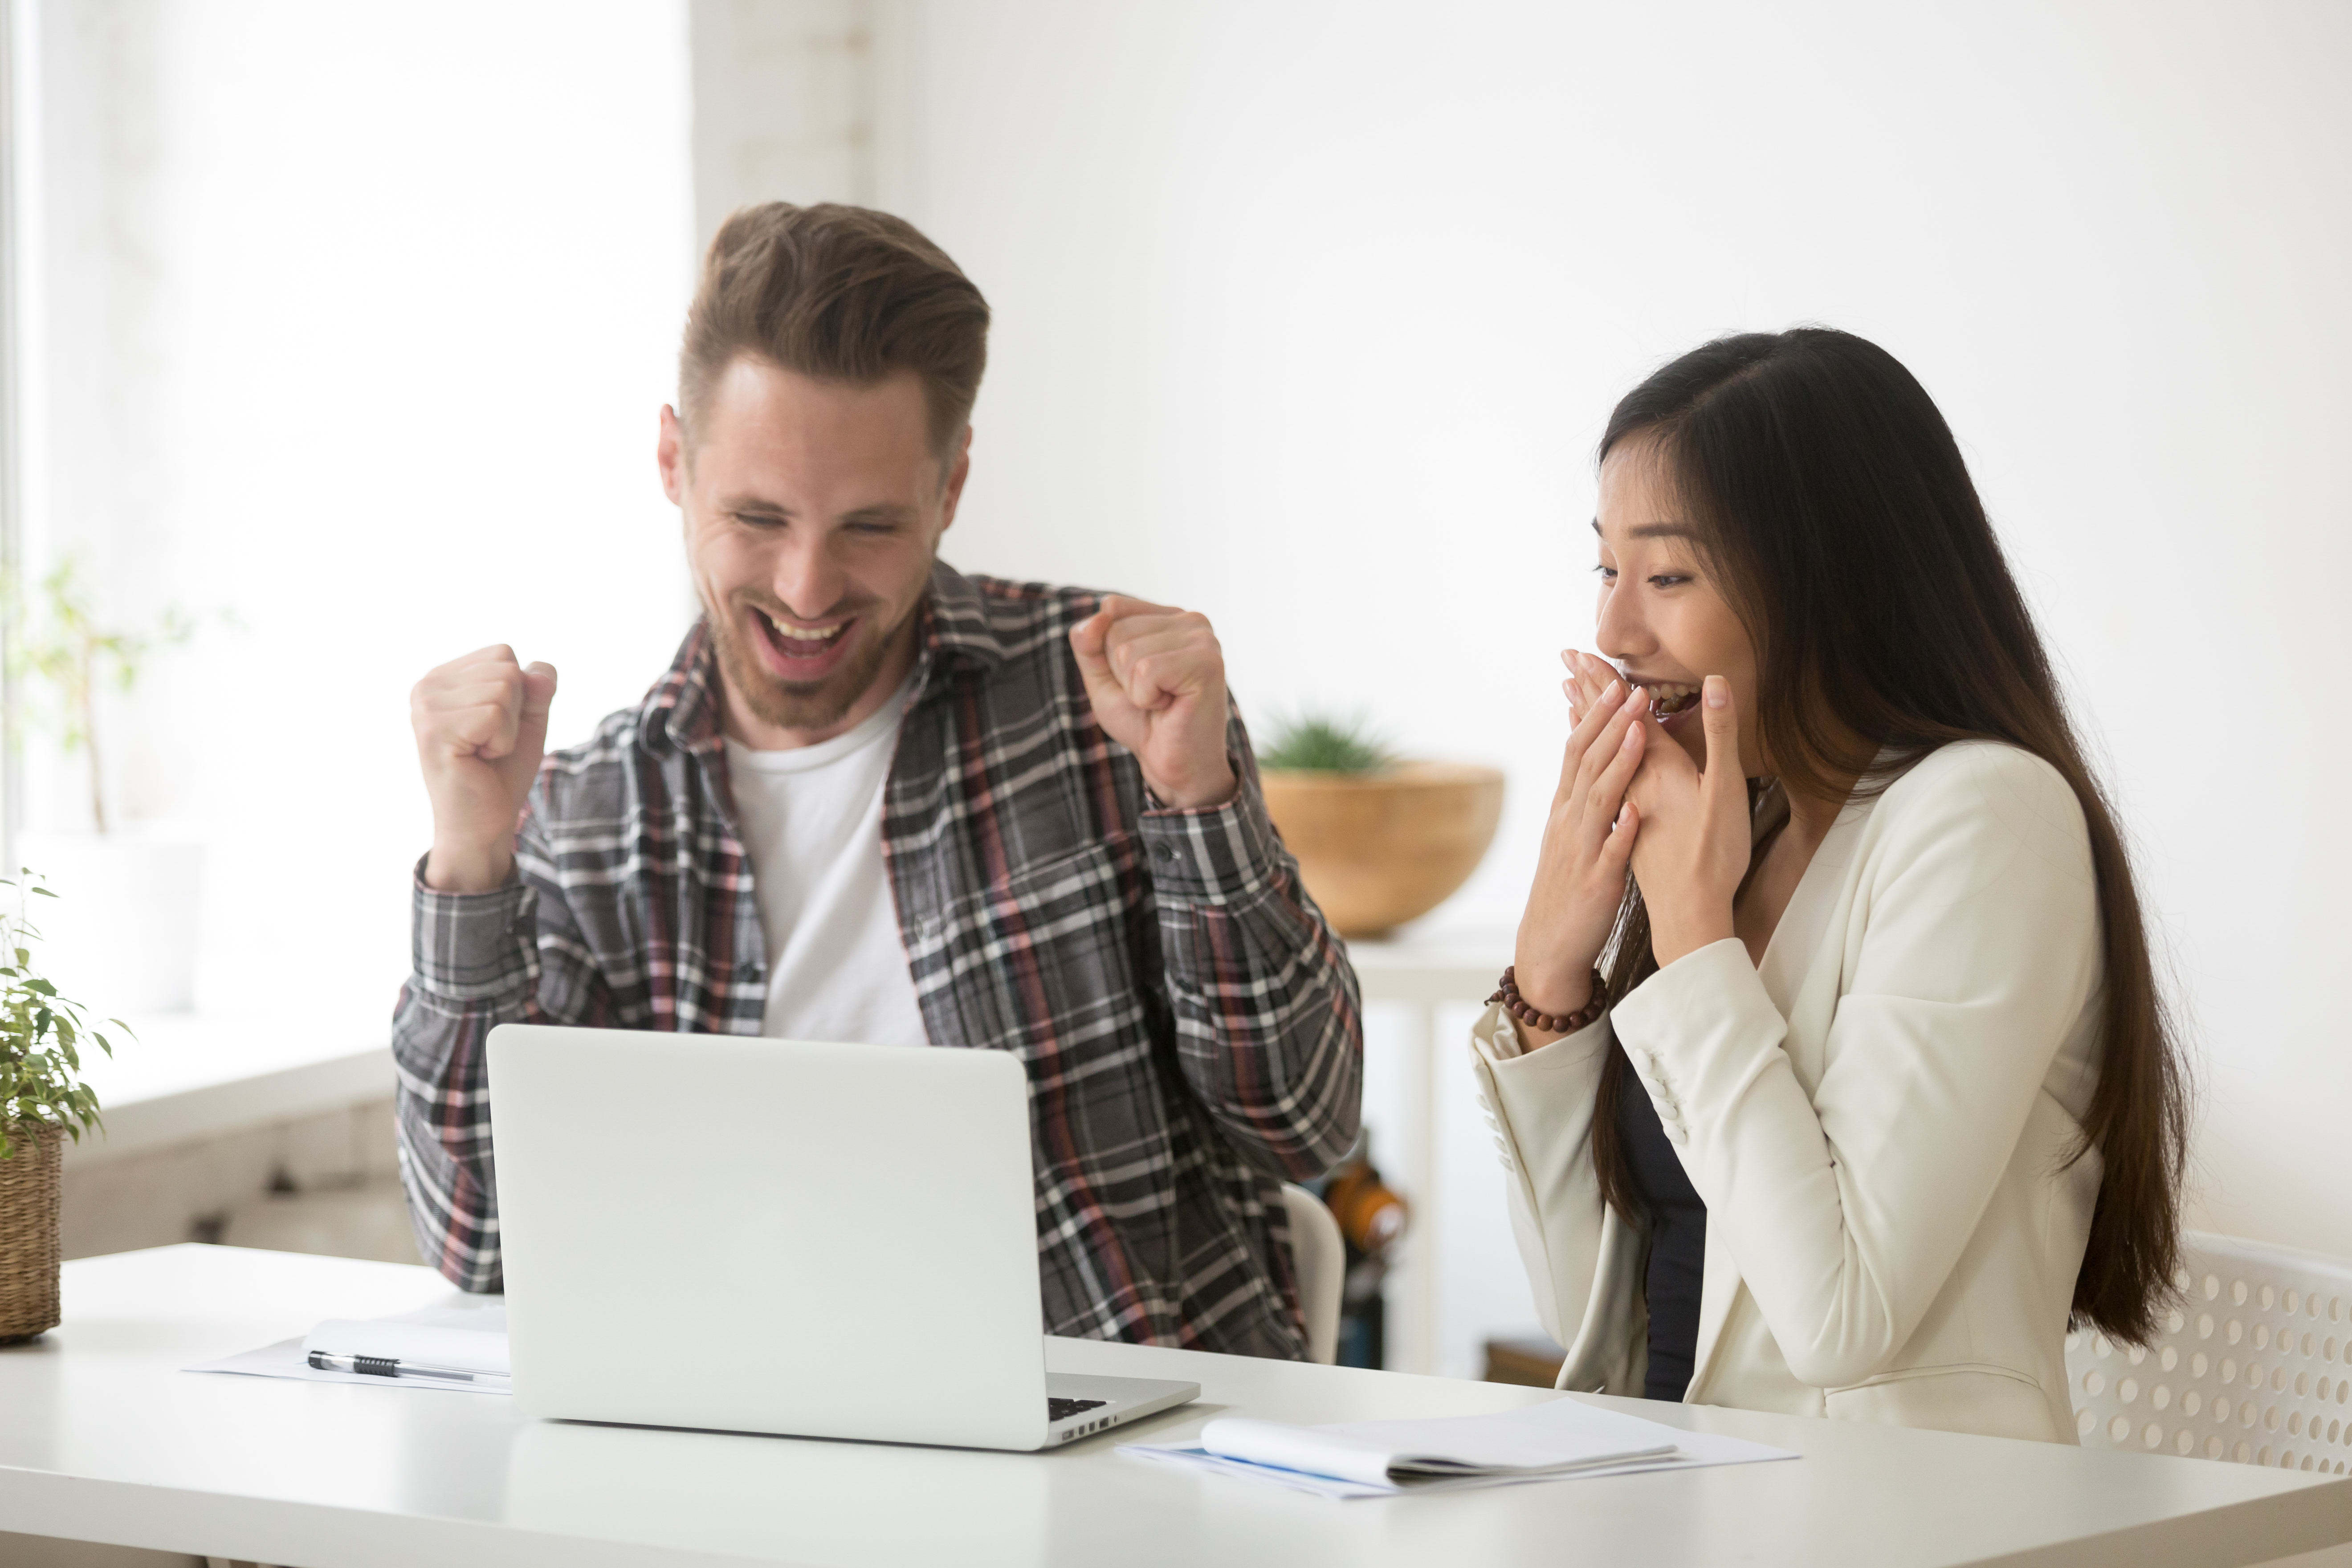 man and woman in front of a laptop looking very excited